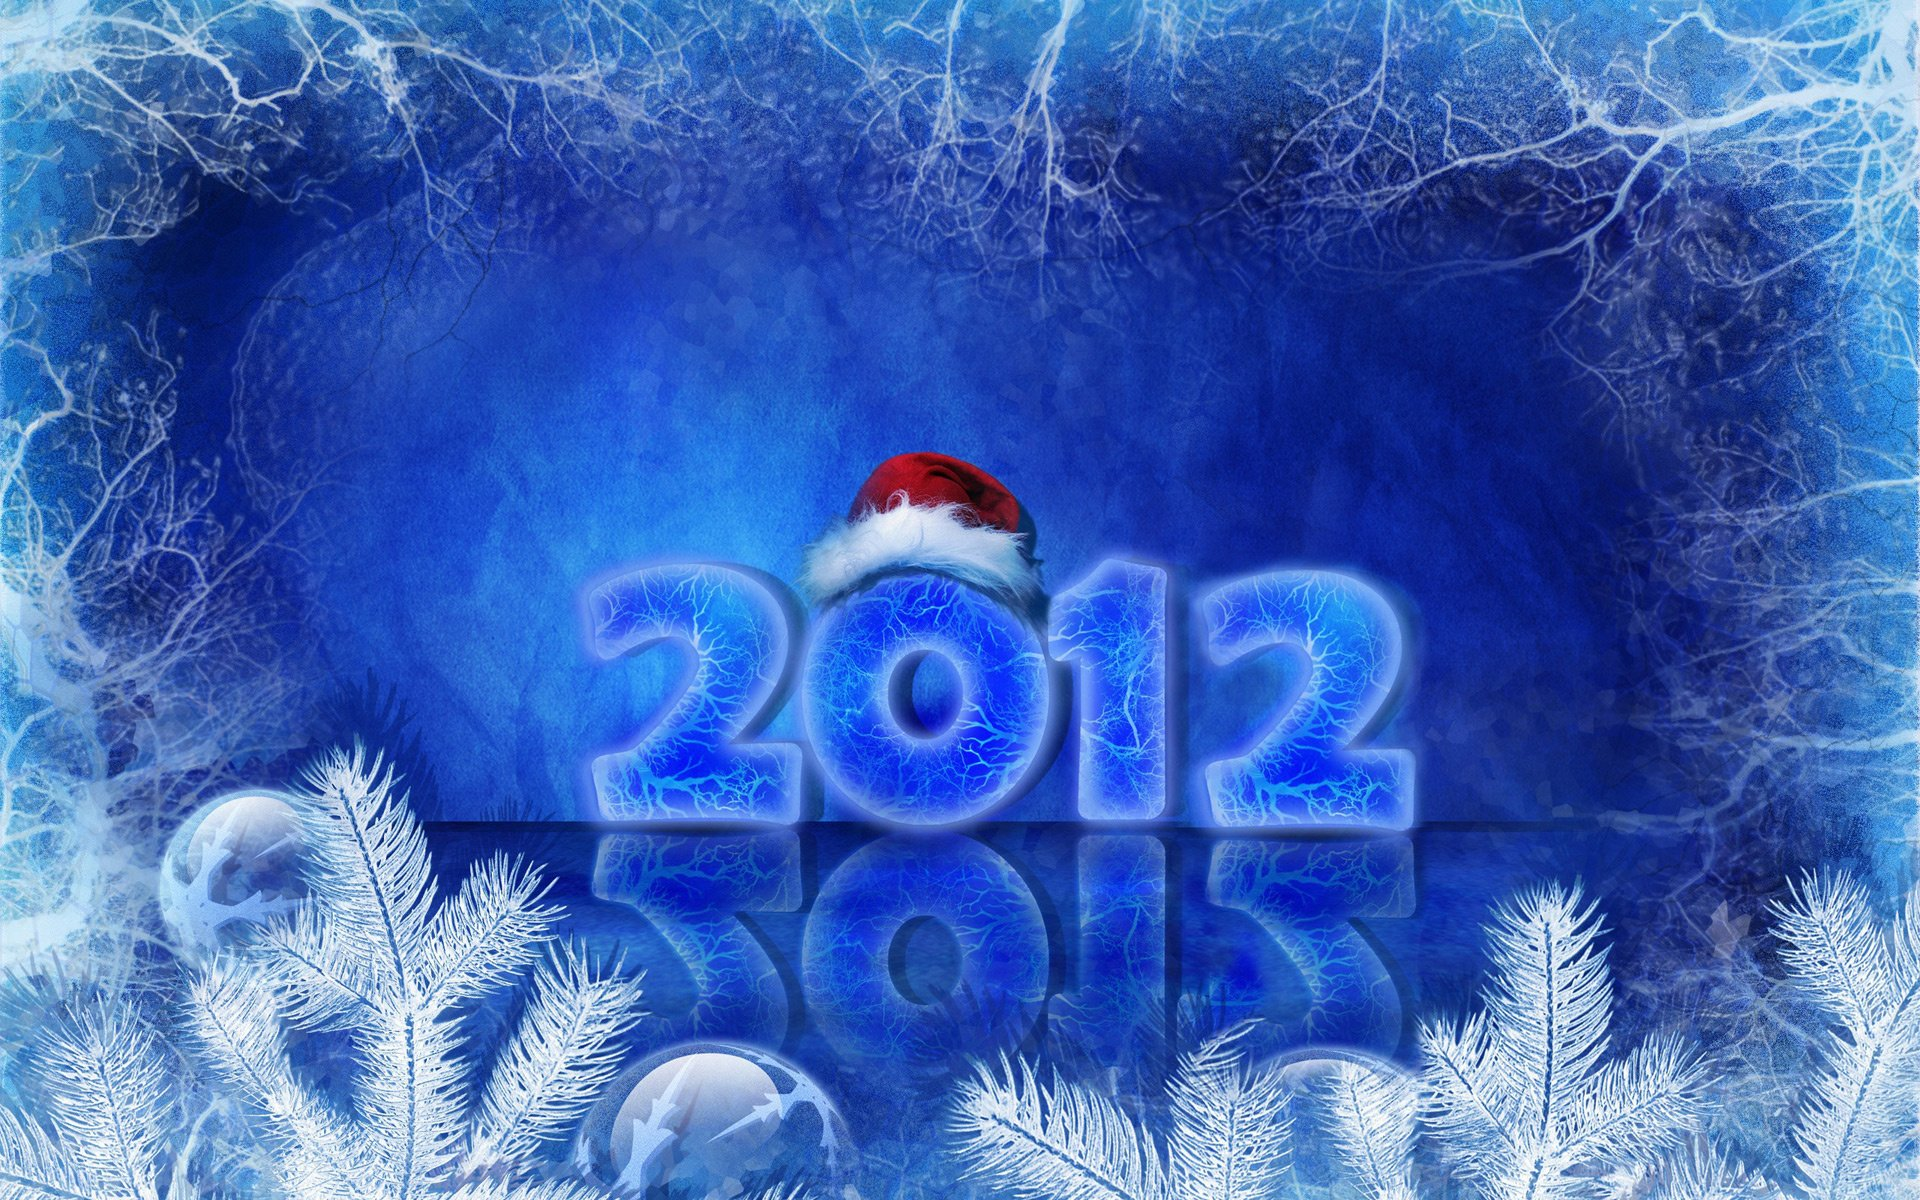 Holiday - New Year 2012  Wallpaper